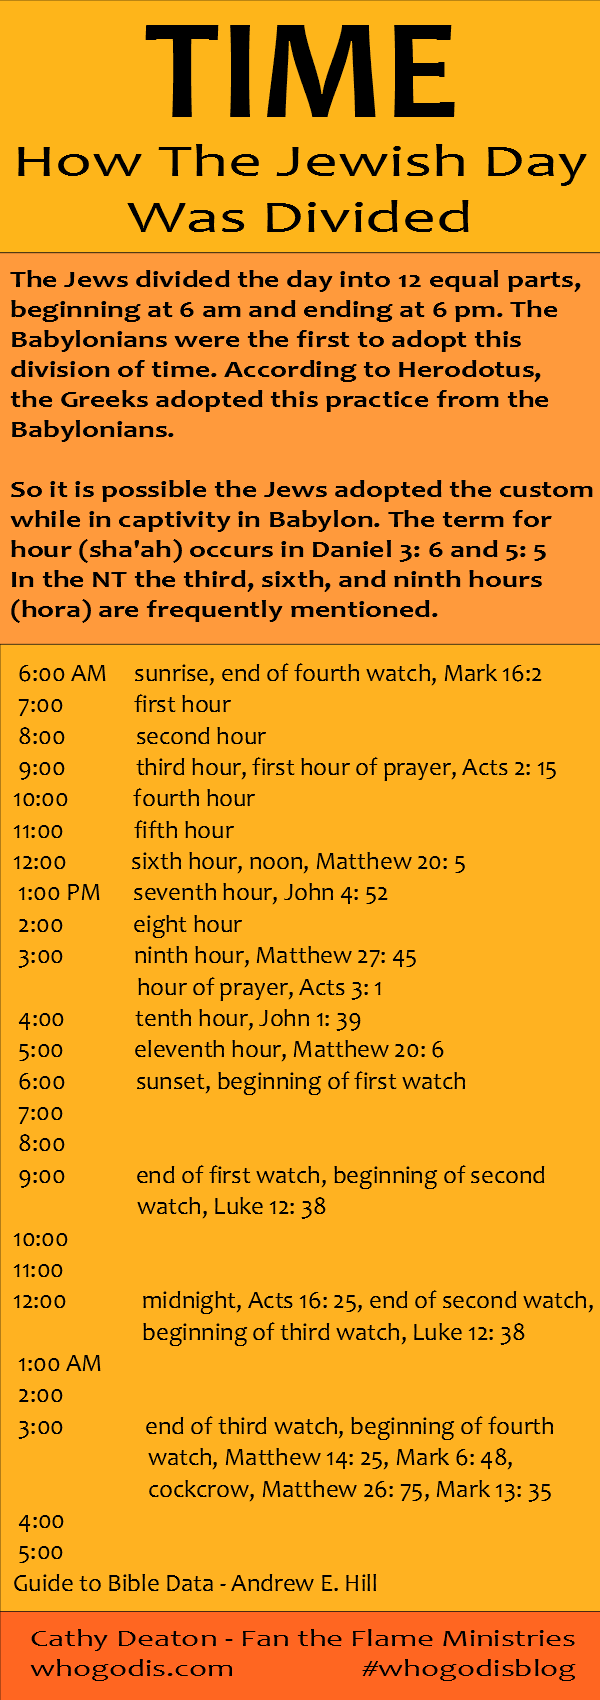 time-how-jewish-day-divided